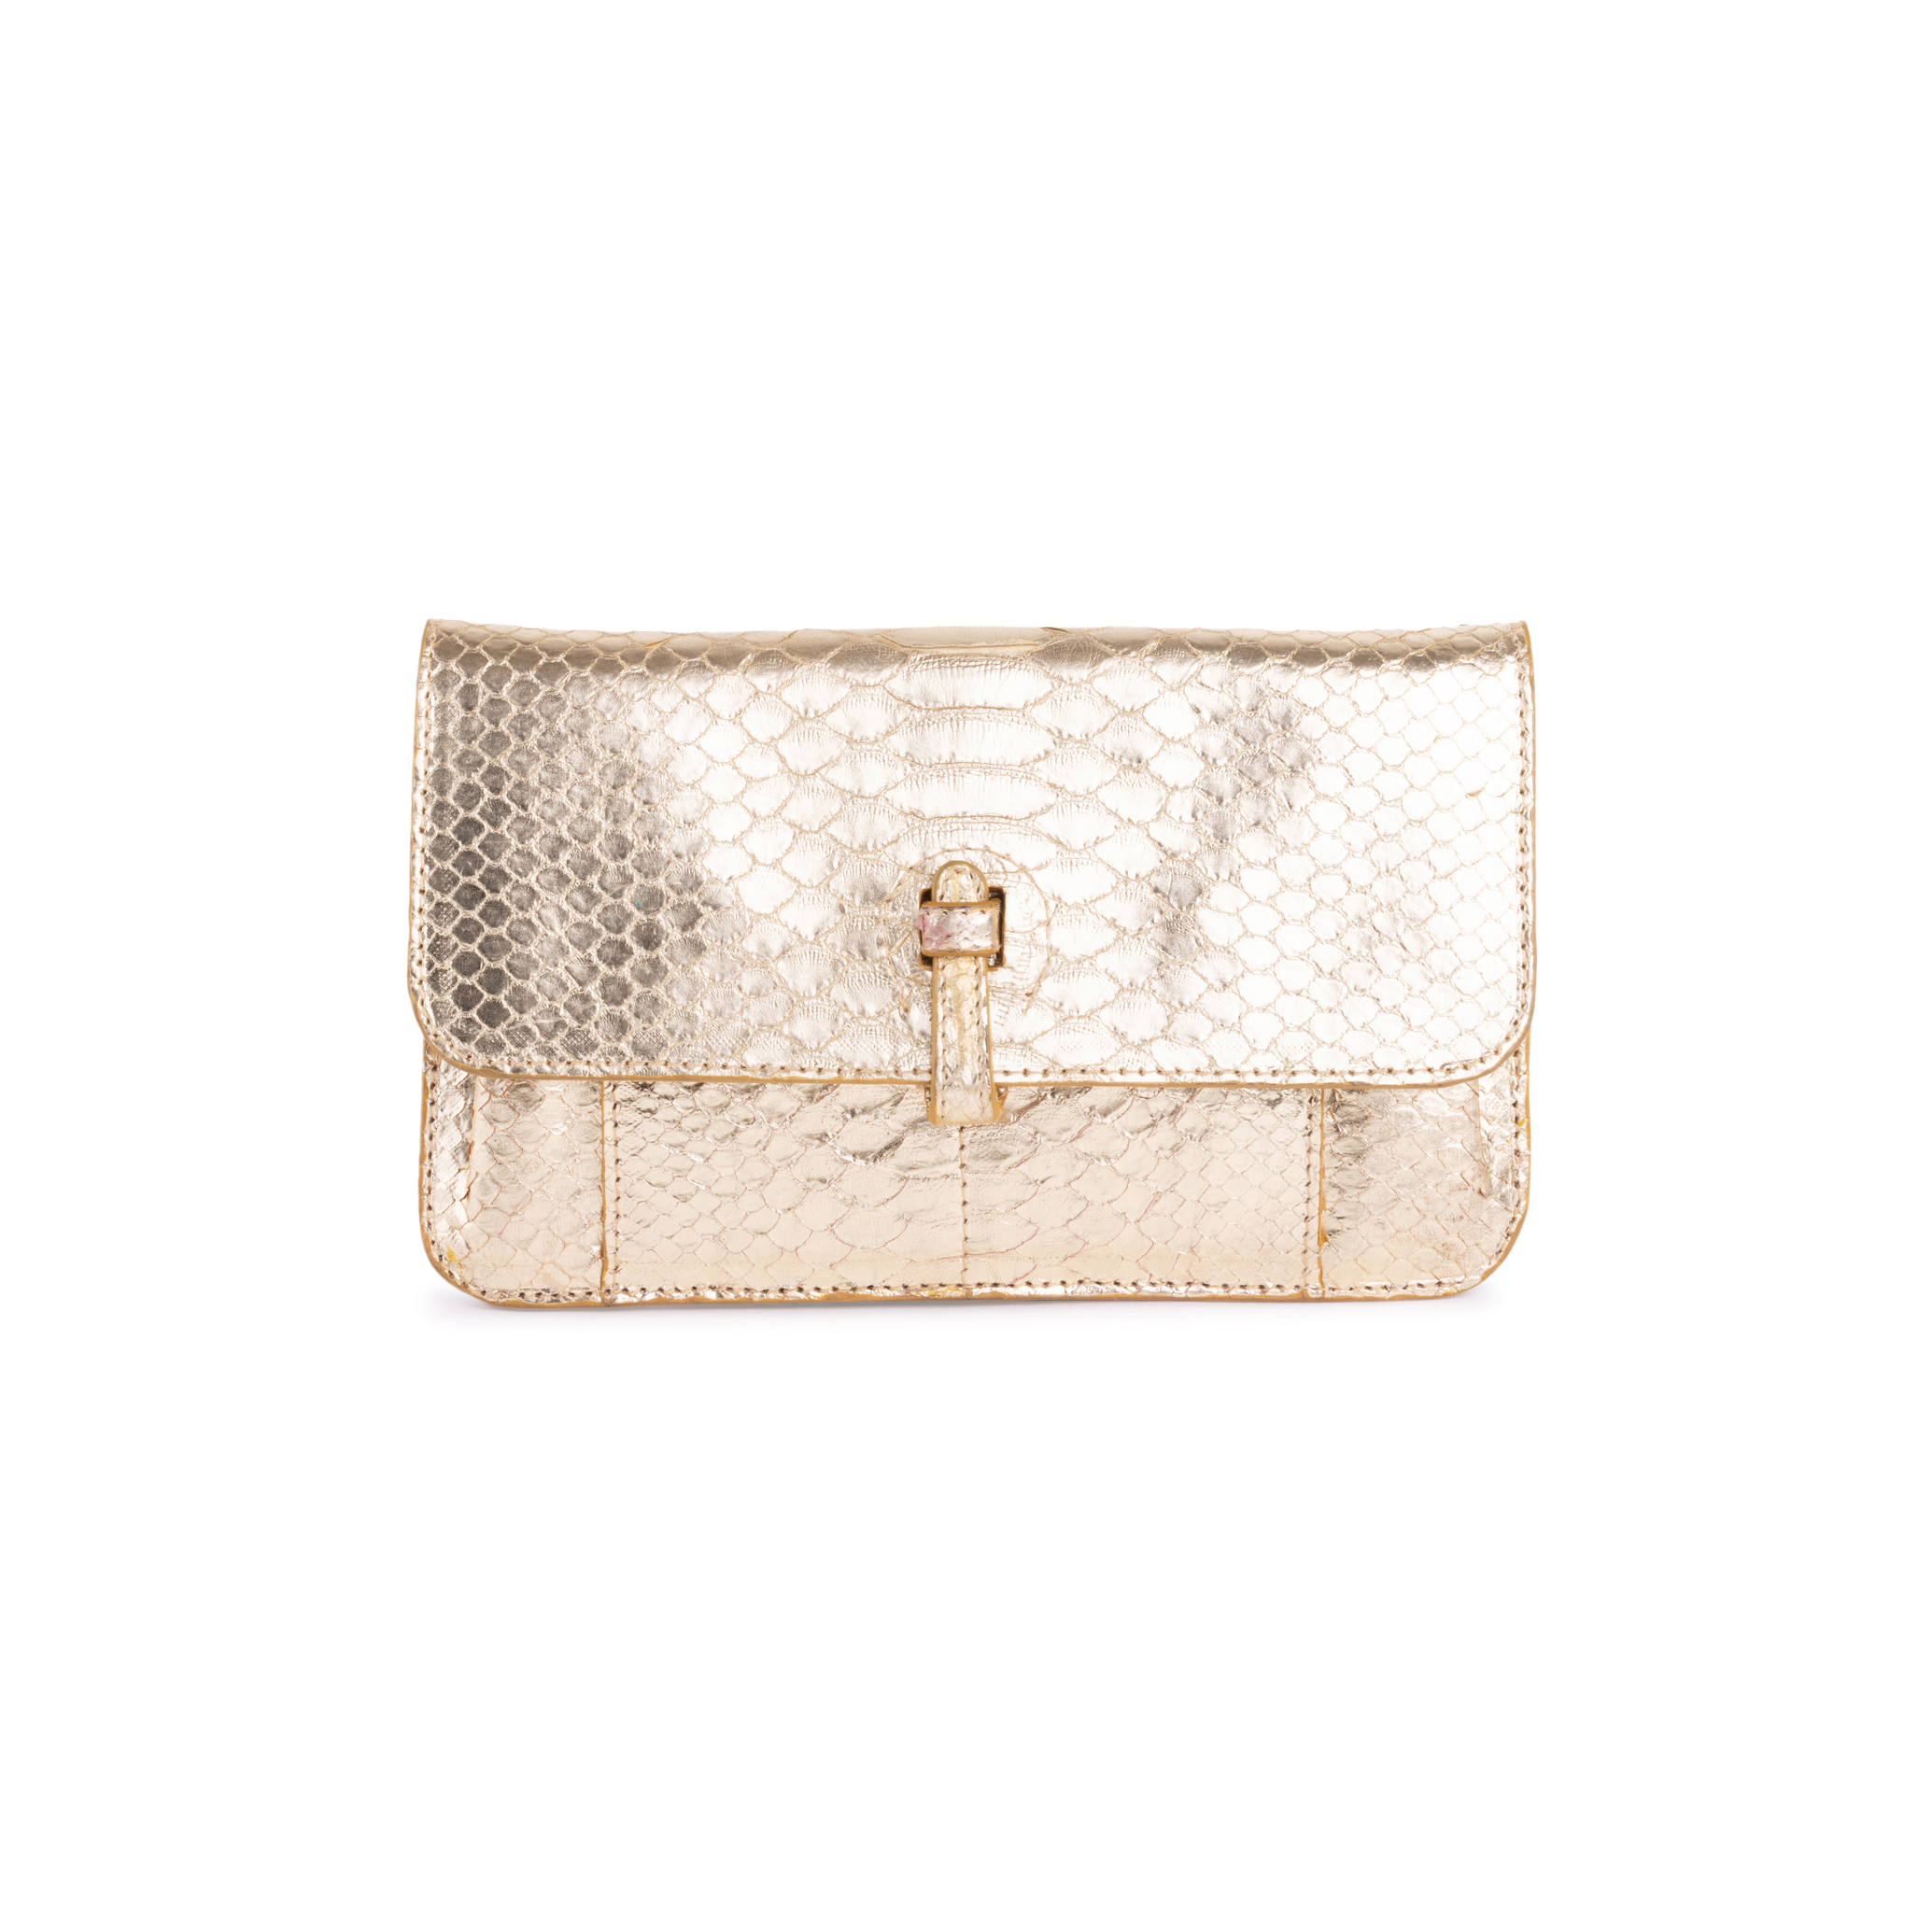 89314f766ce prevnext. Authentic Pre Owned Ling Wu Small Python Clutch Wallet  (PSS-636-00019)